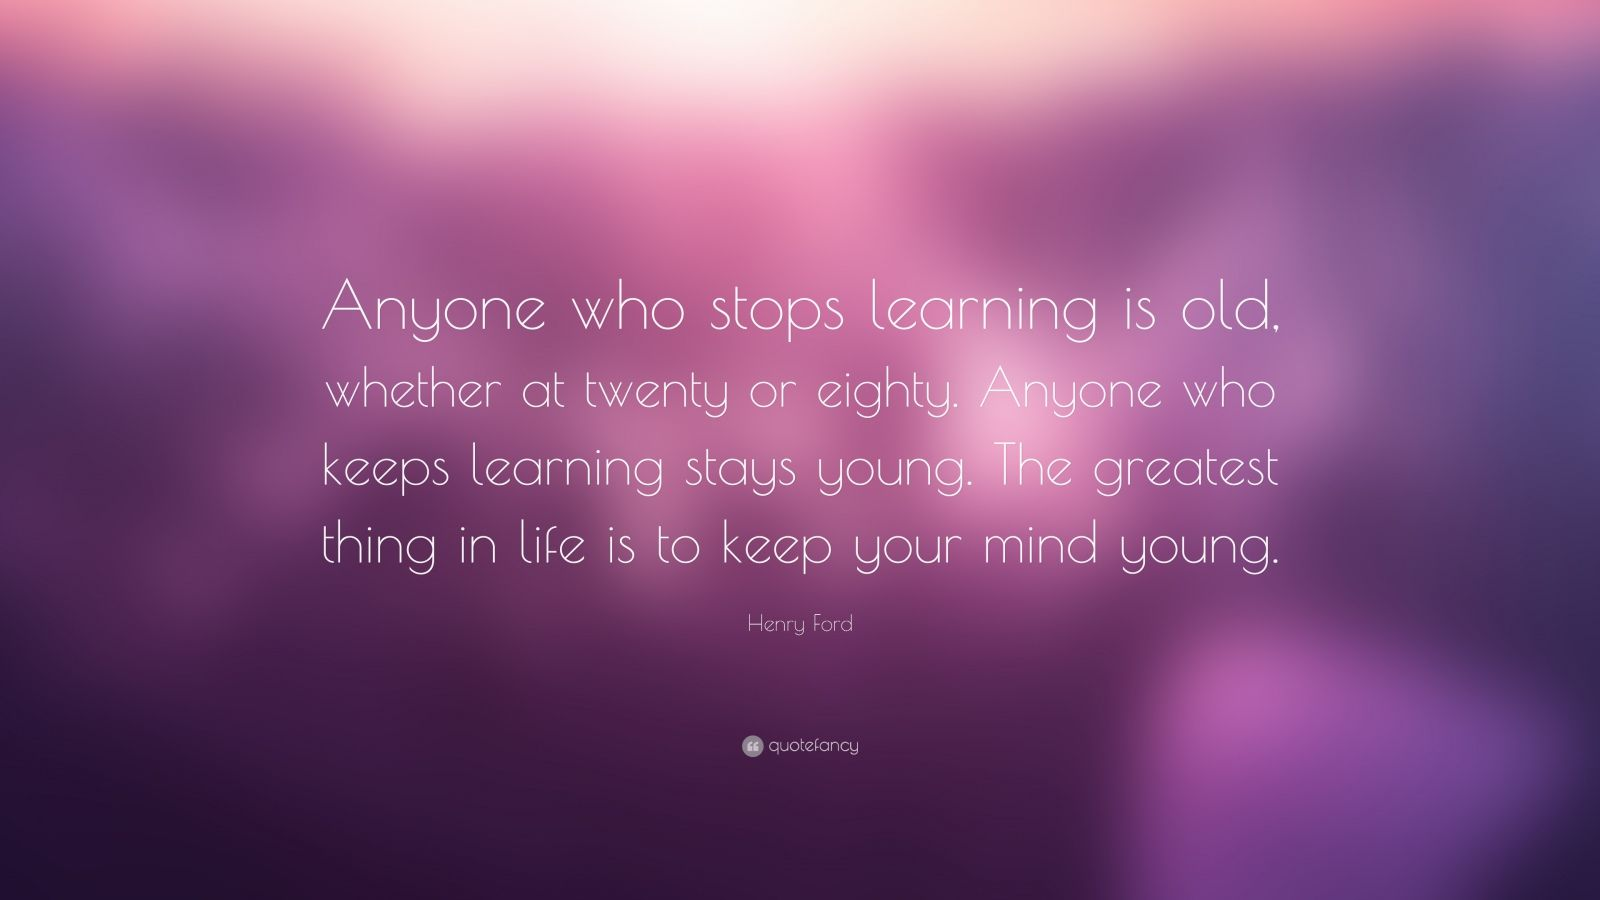 Anyone who stops learning is old whether at twenty or eighty